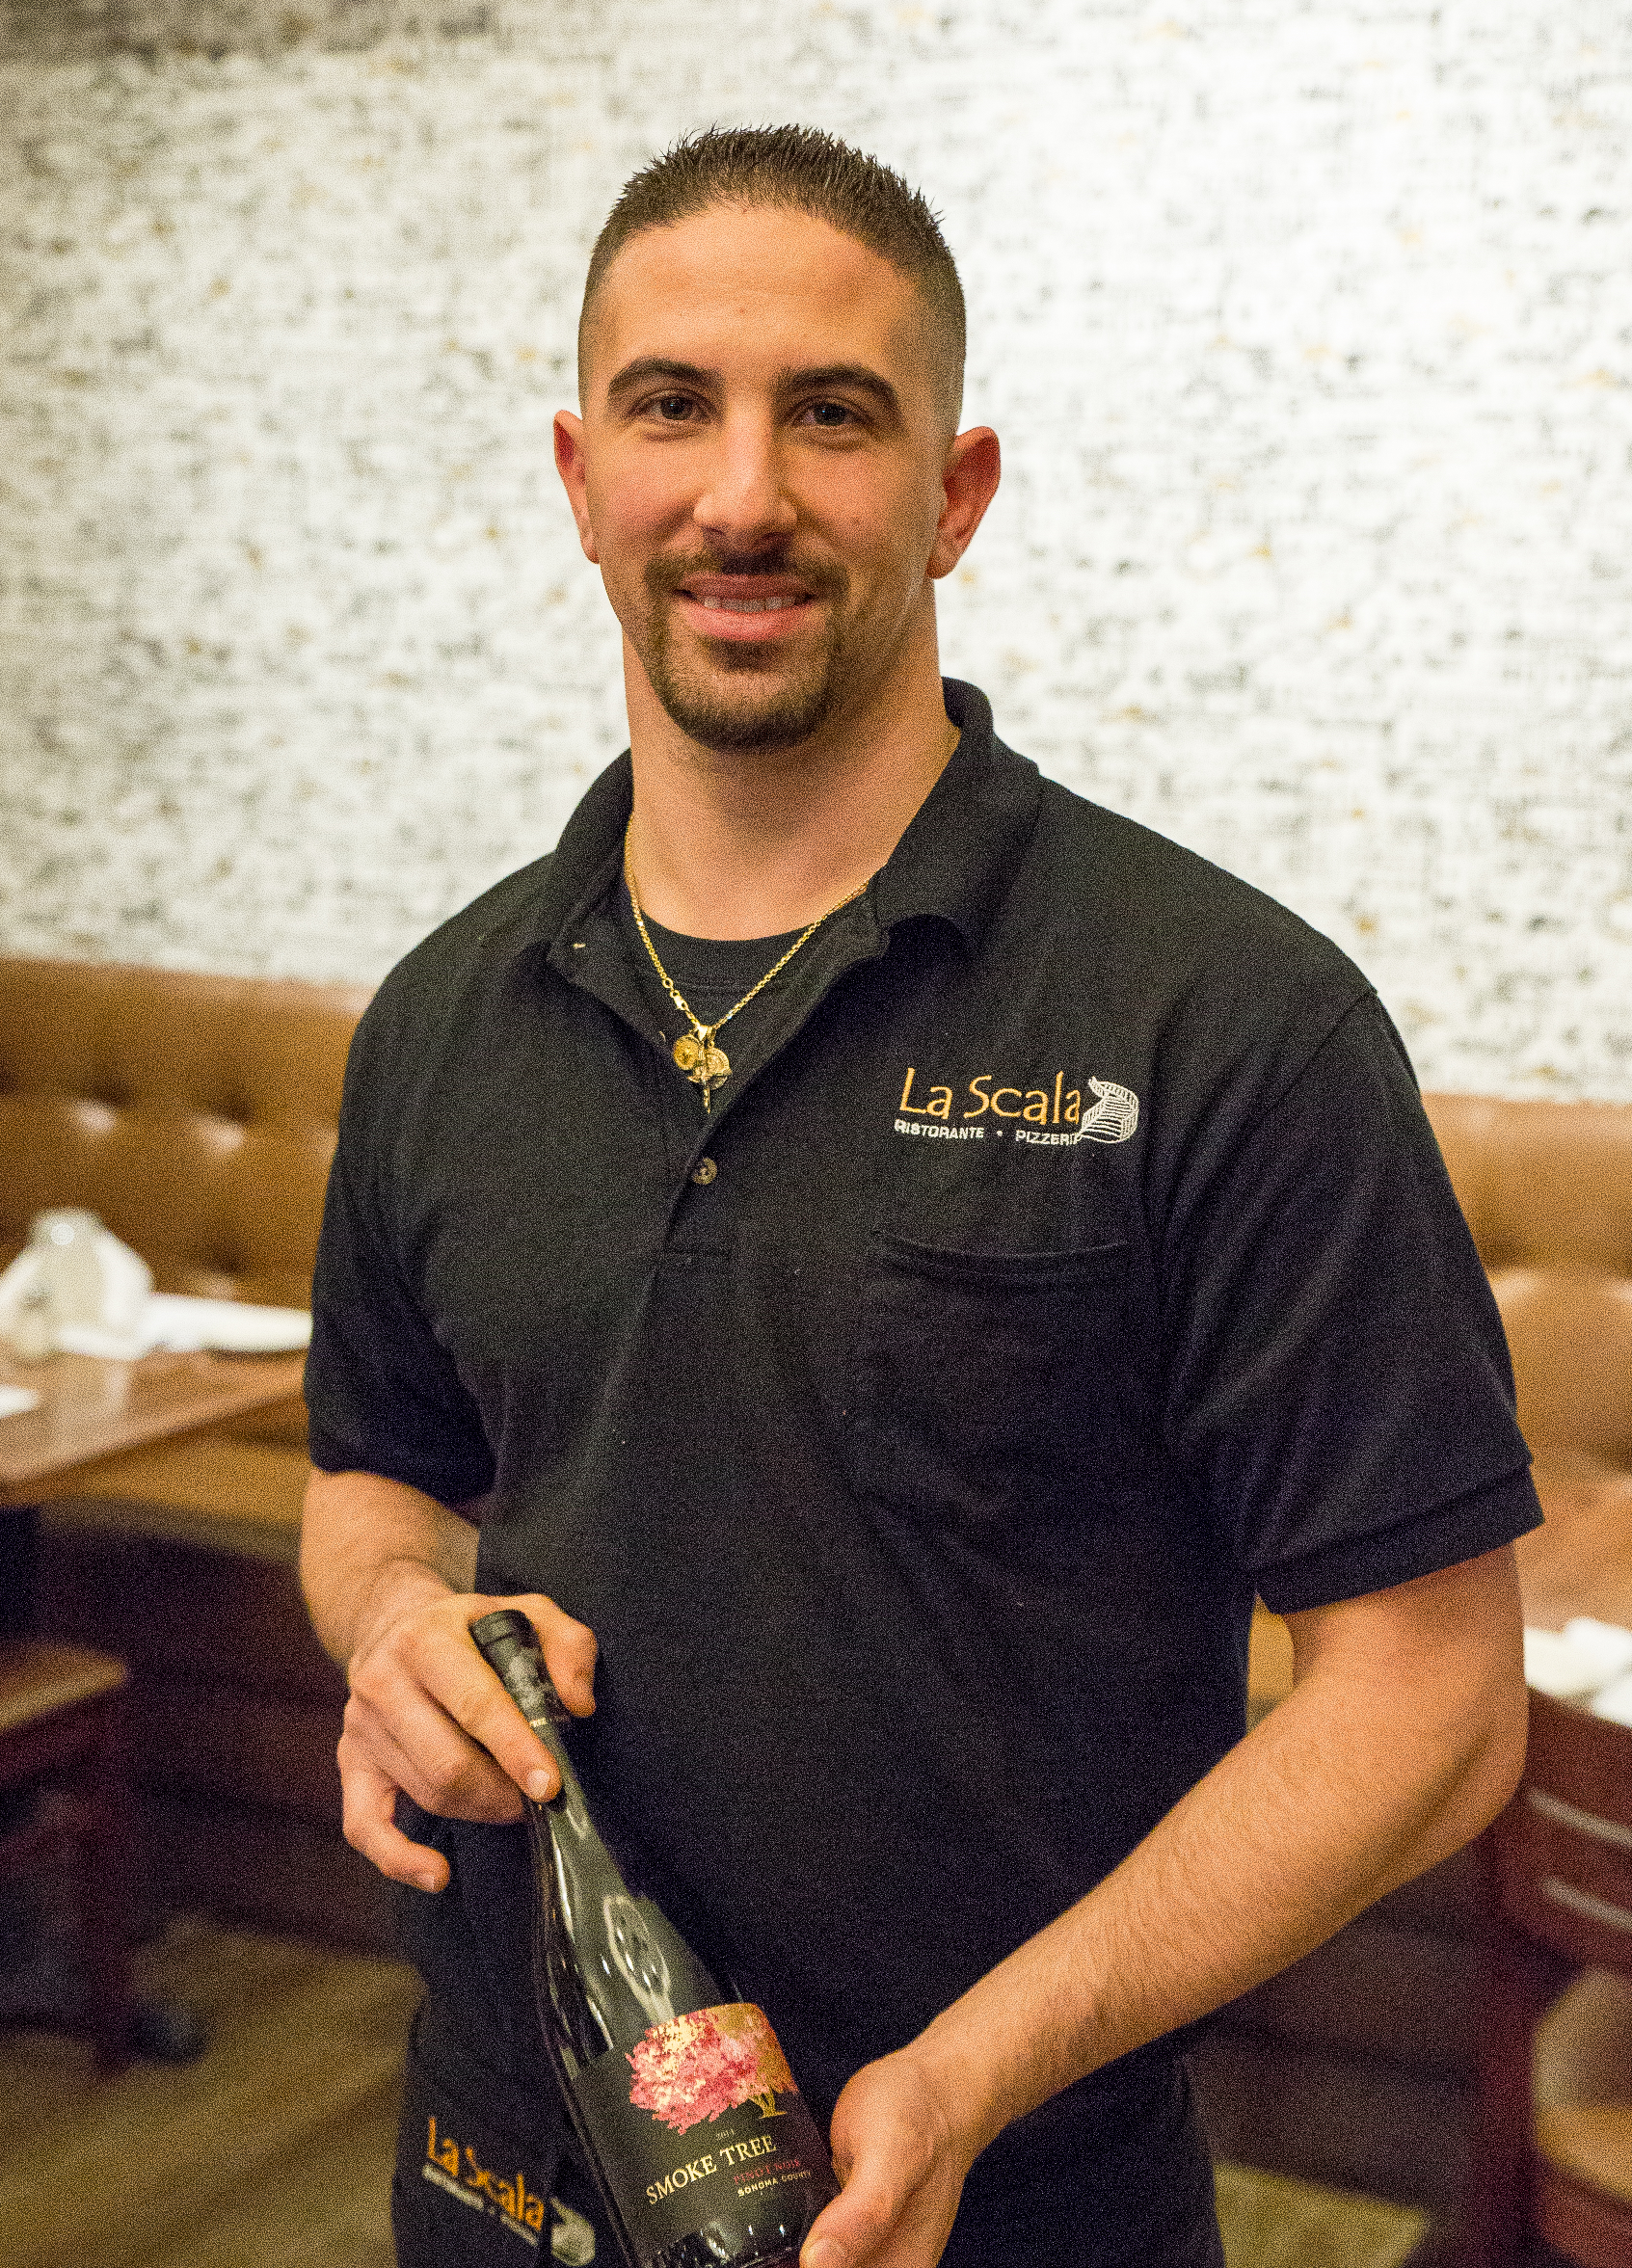 Christopher Castelli started at La Scala restaurant in 2003 as a busboy and dedicated himself as he worked his way up to being a co-owner.